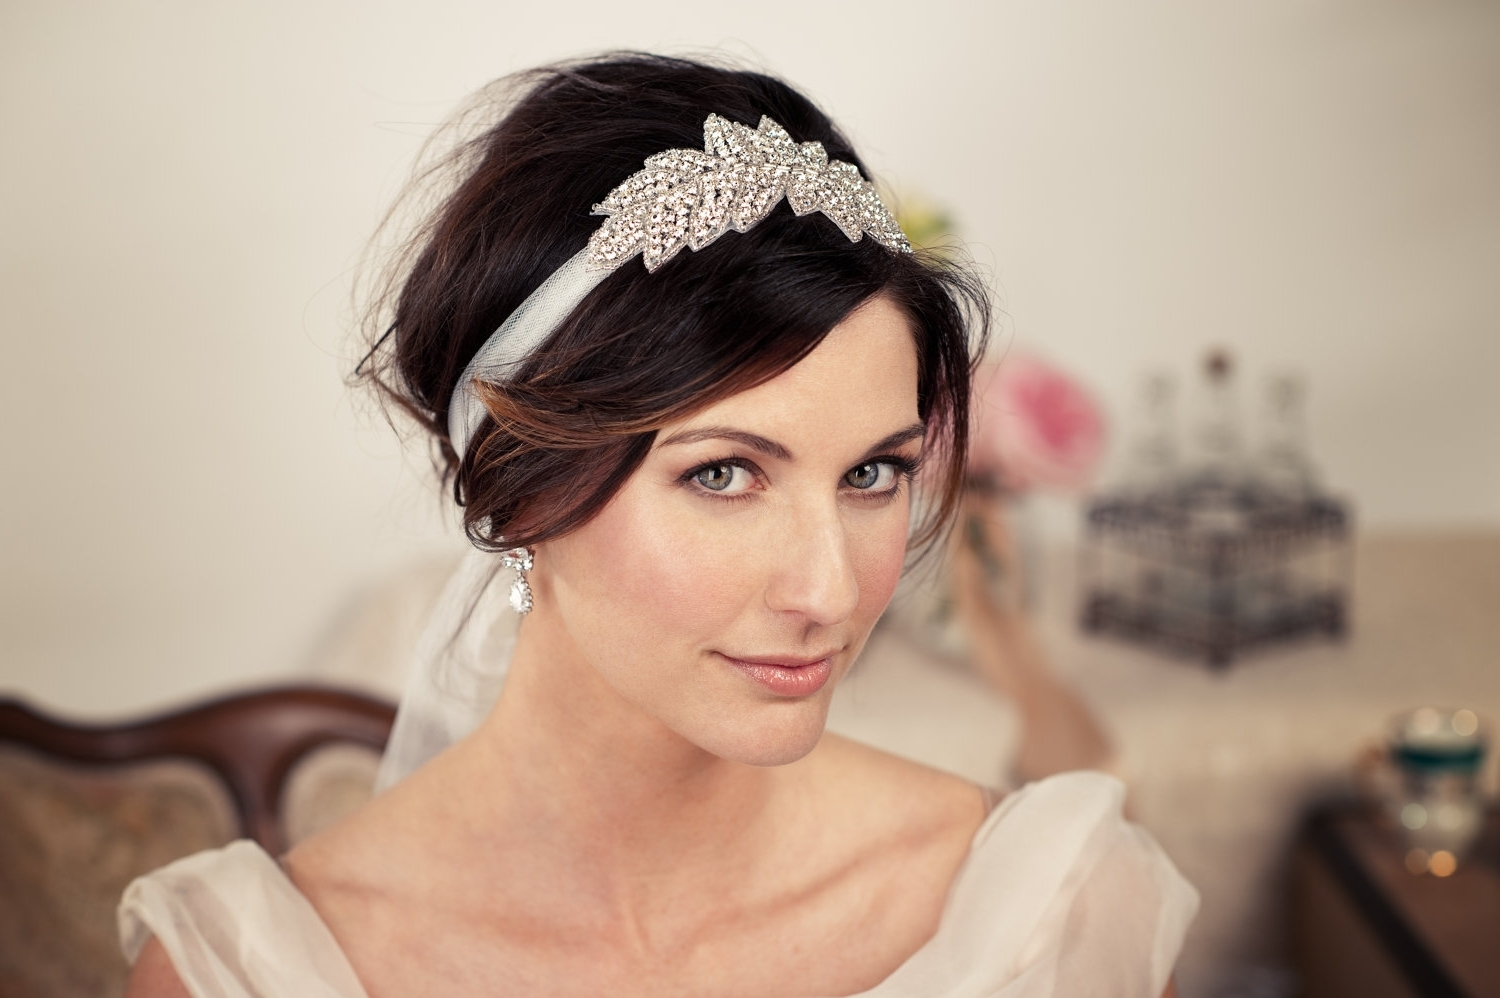 Best And Newest Wedding Hairstyles For Short Hair With Veil For Short Wedding Hairstyles With Veil – Short Hairstyles For Women And Man (View 6 of 15)